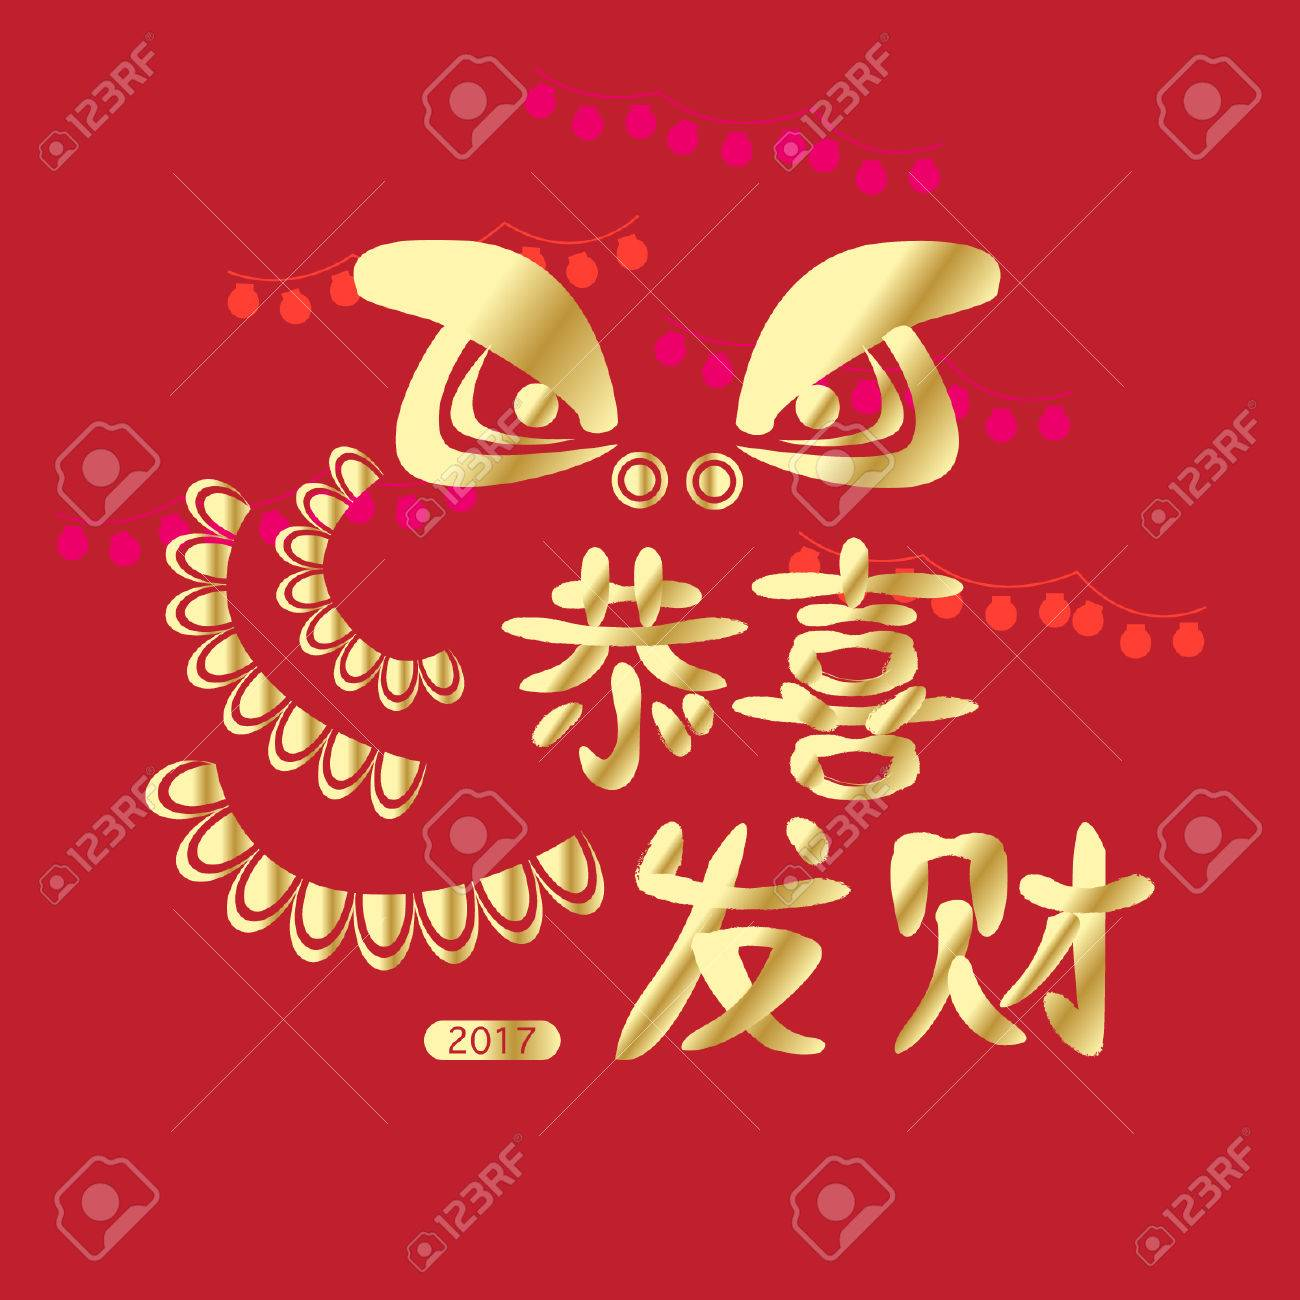 chinese new year 2017 design of lion dance chinese words is a greetings means